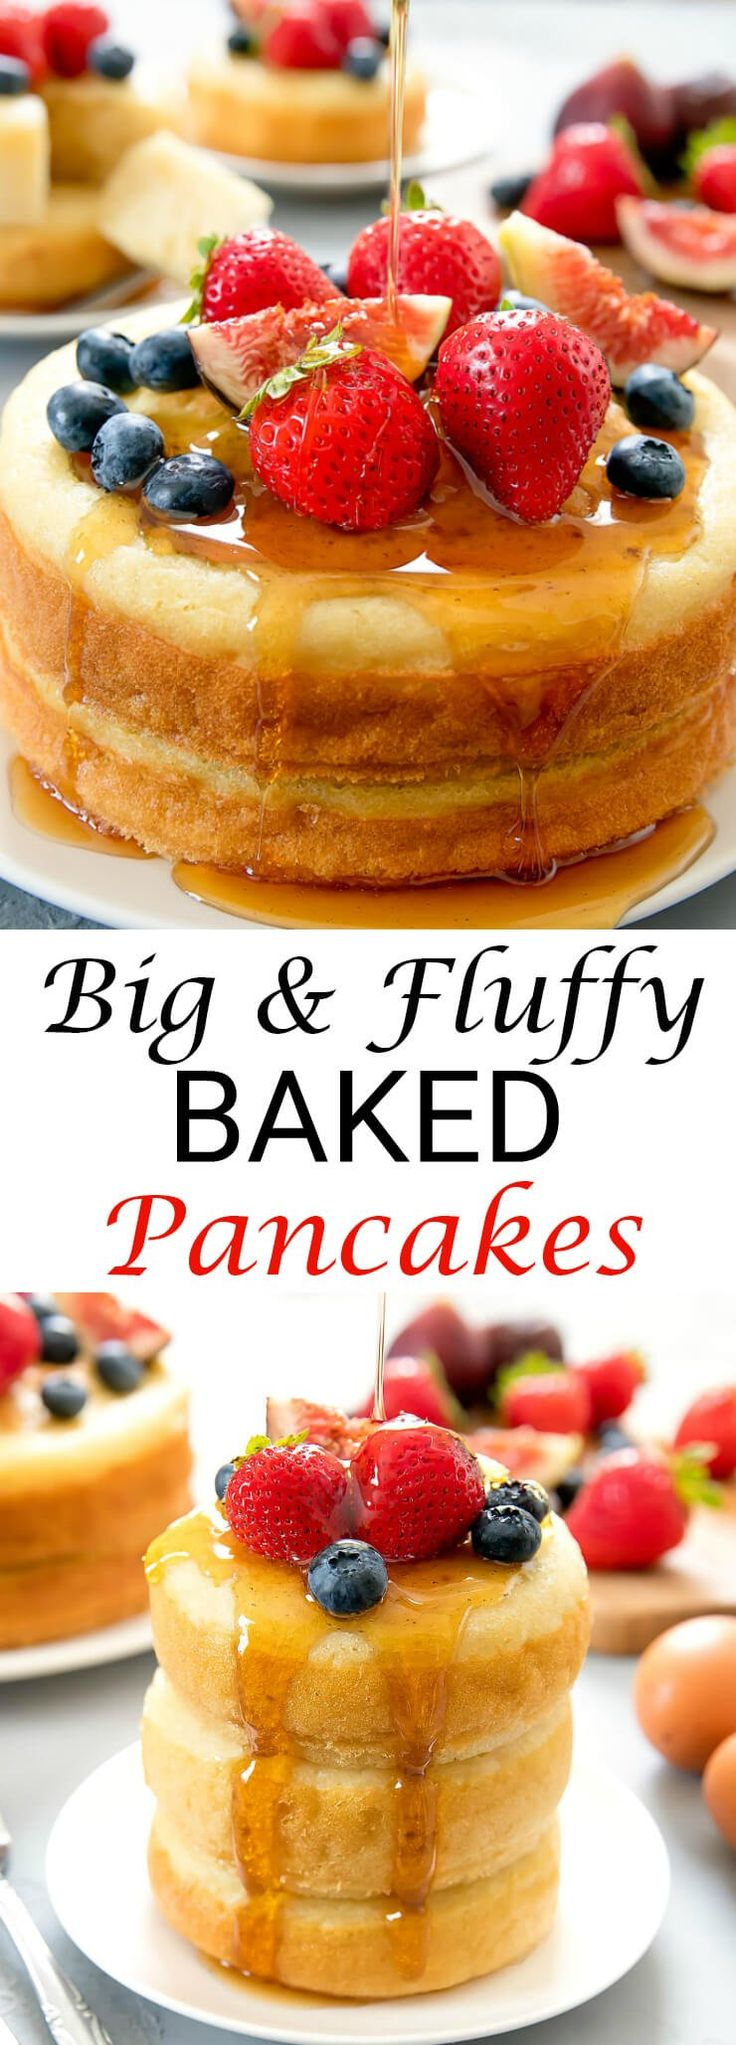 Big and Fluffy Baked Buttermilk Pancakes. These giant pancakes make for a fun brunch! - from kirbiecravings.com